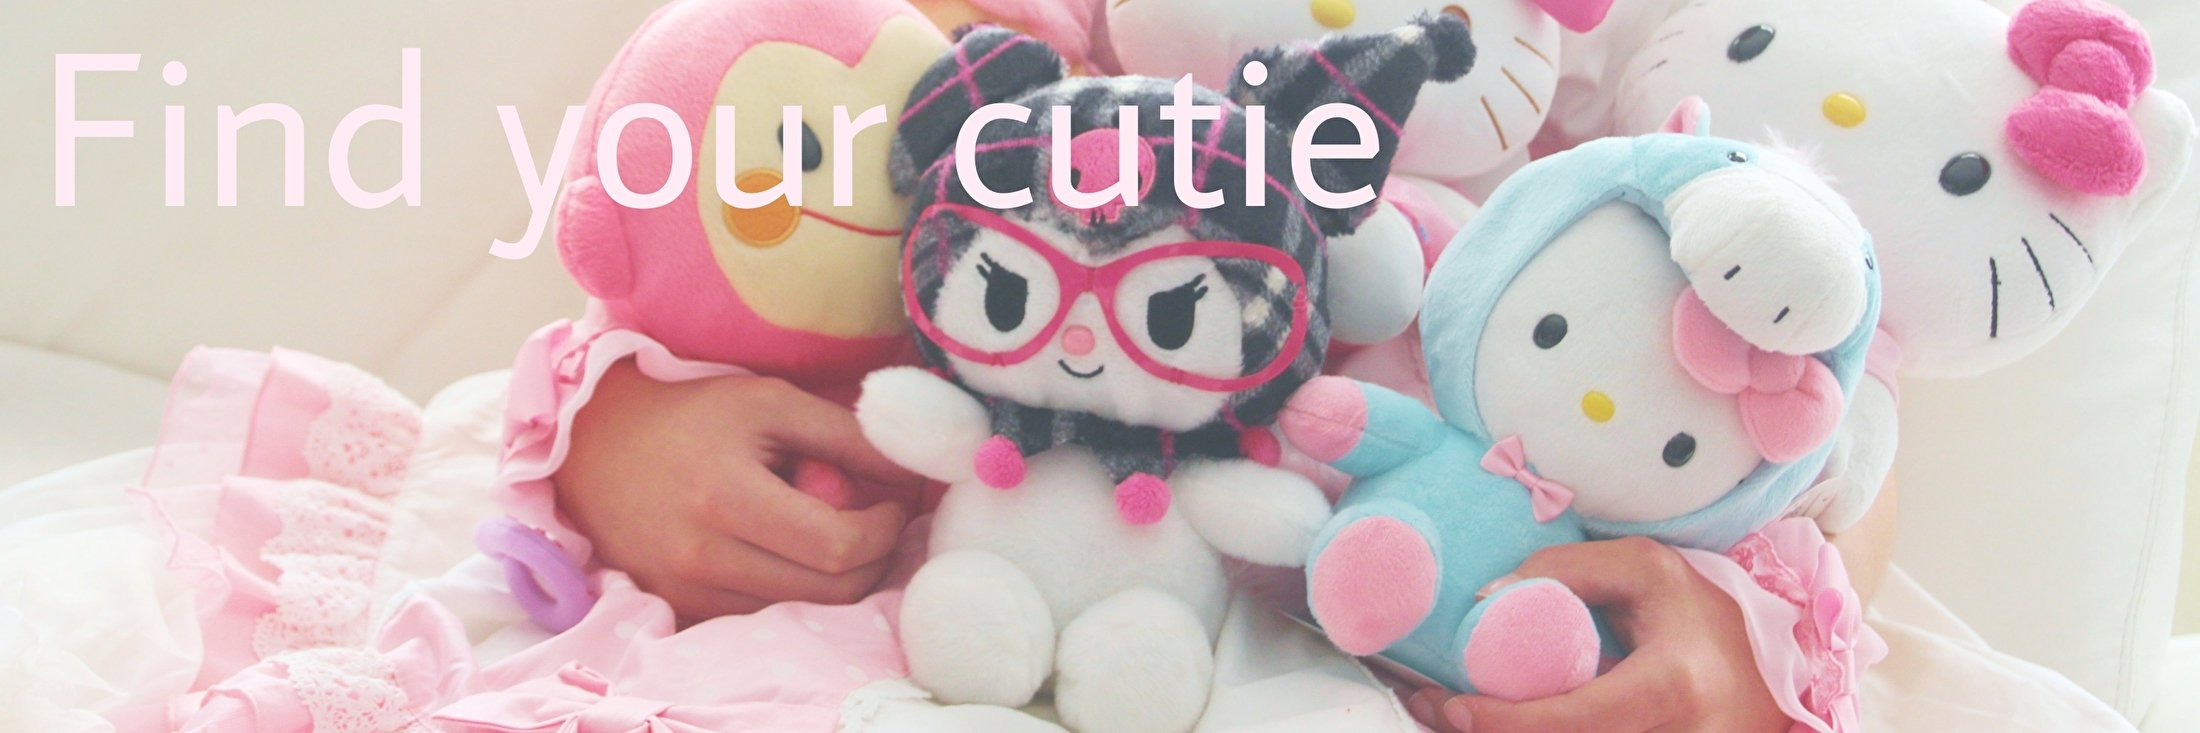 Find your cutie